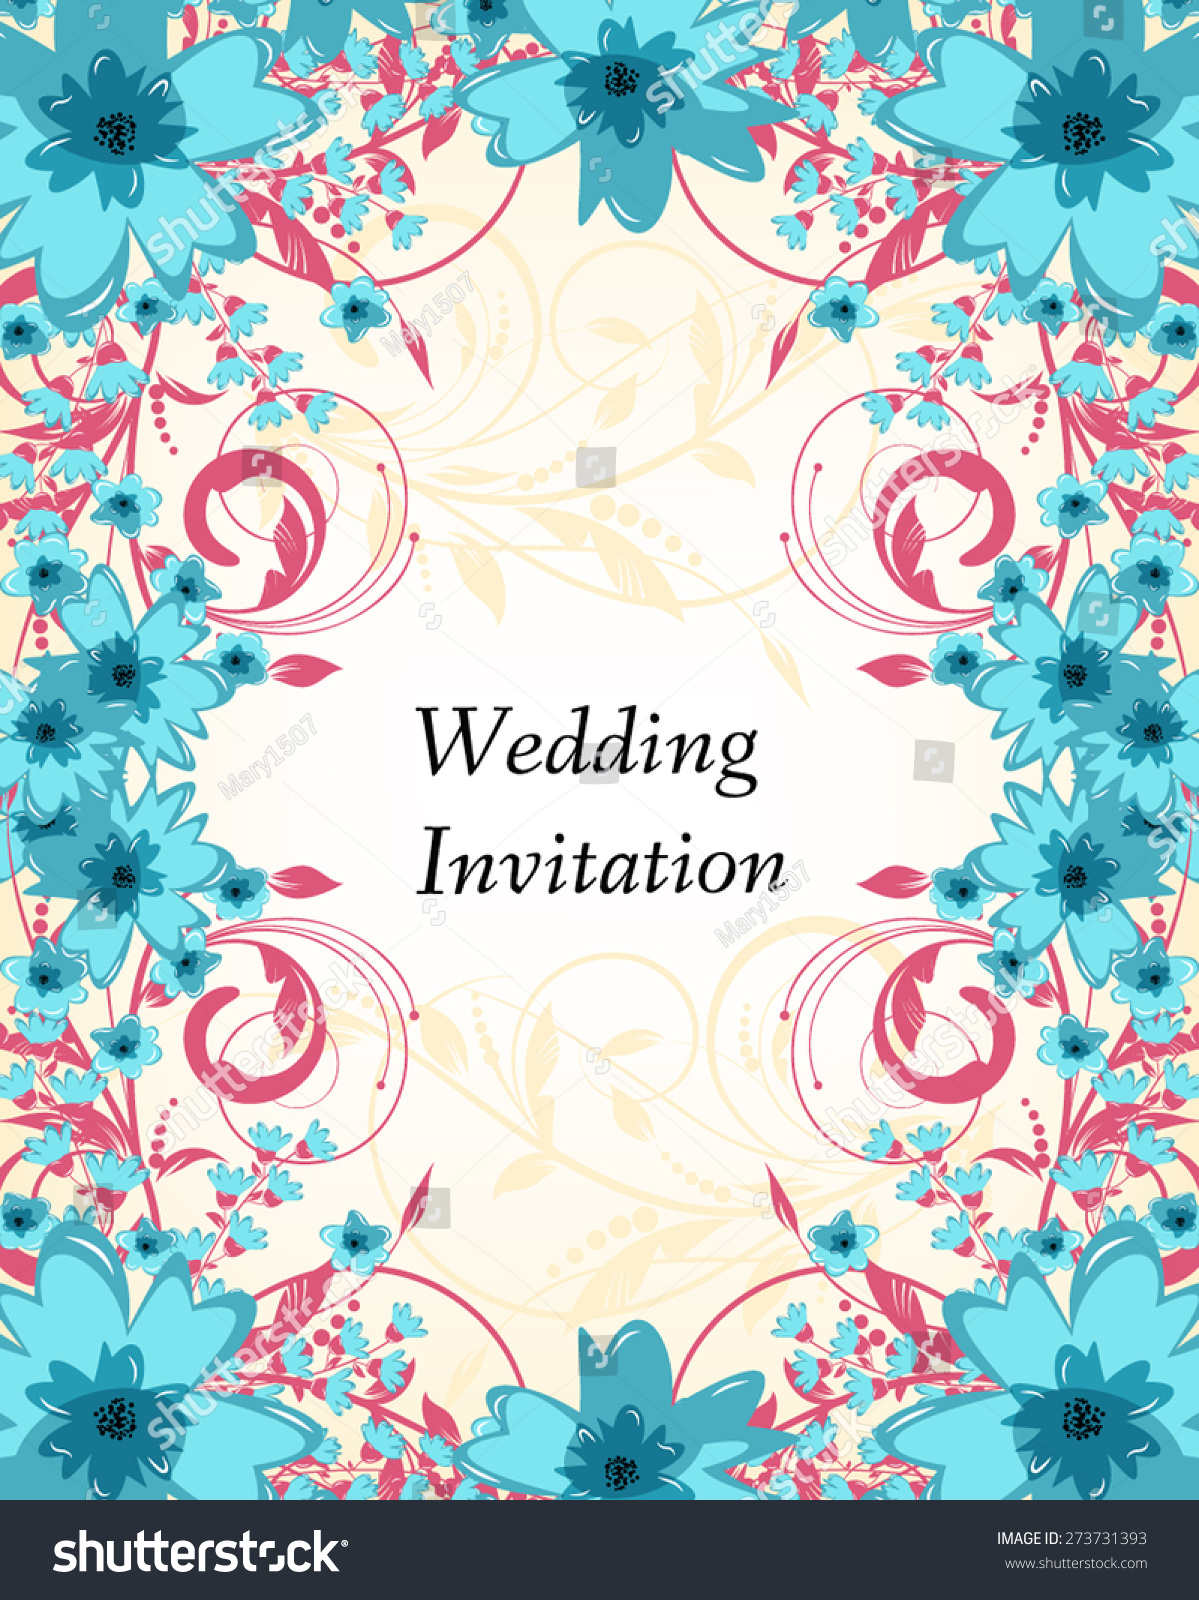 wedding invitation card flowers abstract colorful